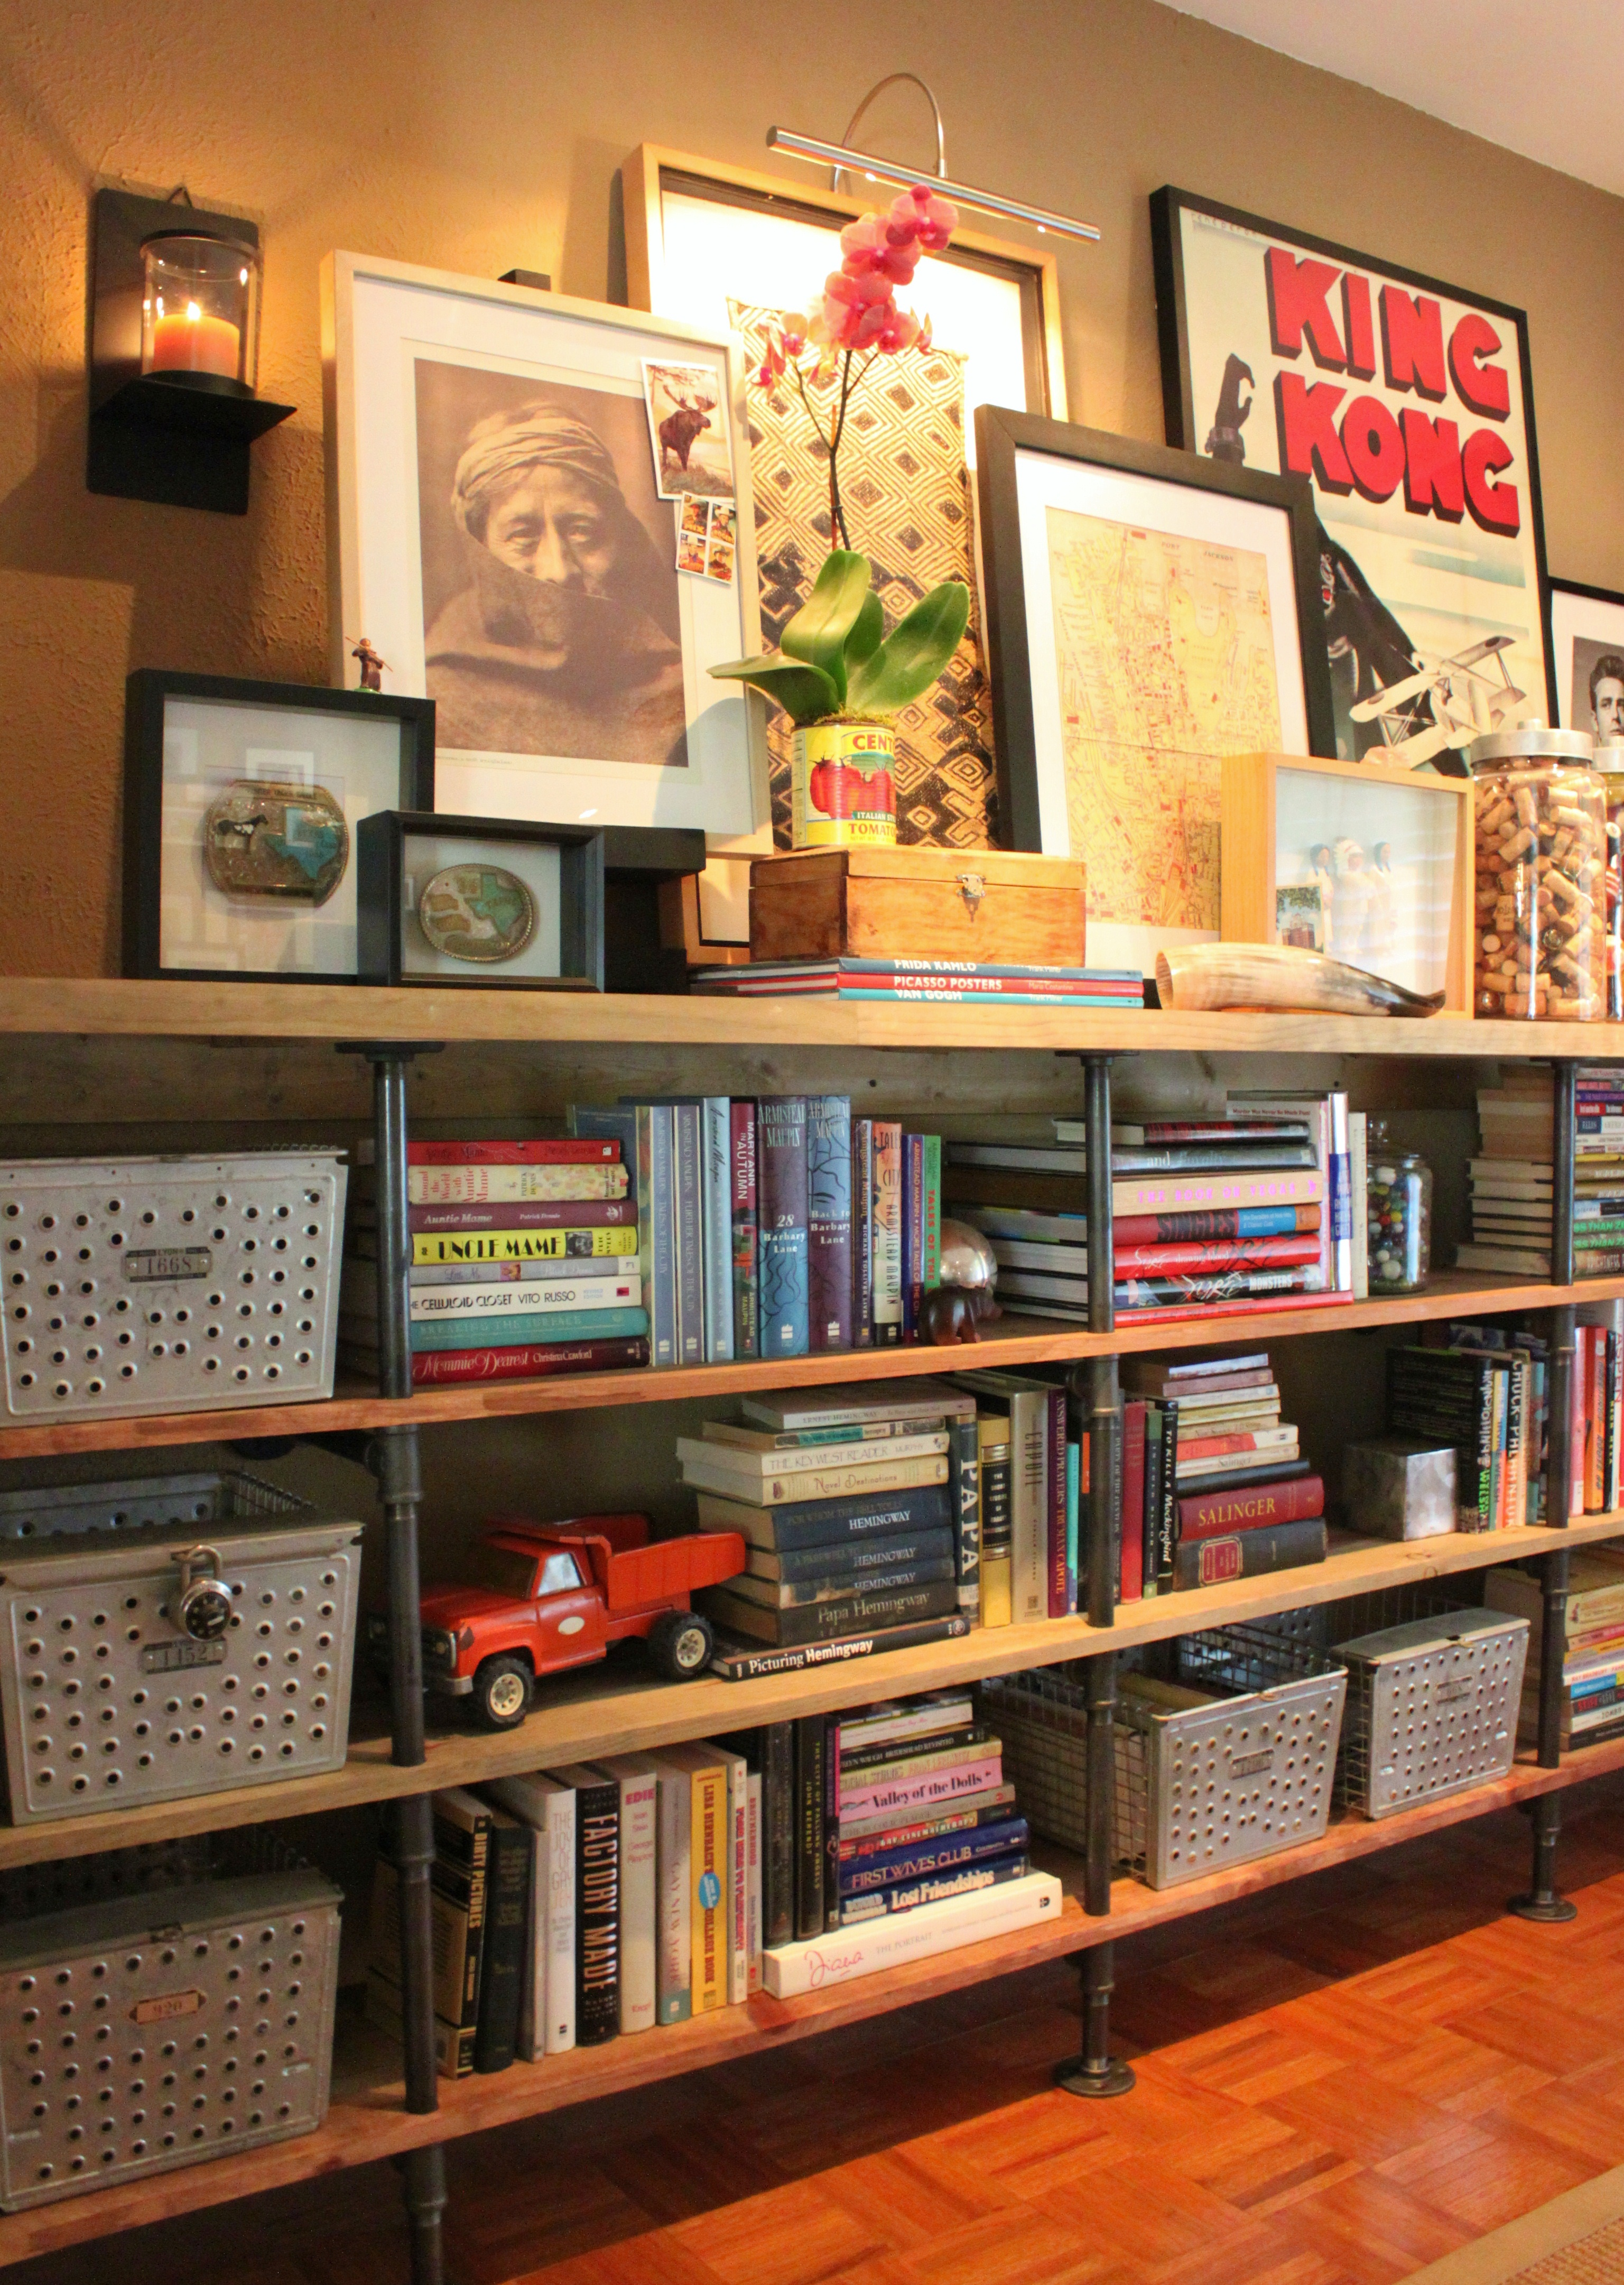 How To Build Plumbing Pipe Shelves  The Cavender Diary